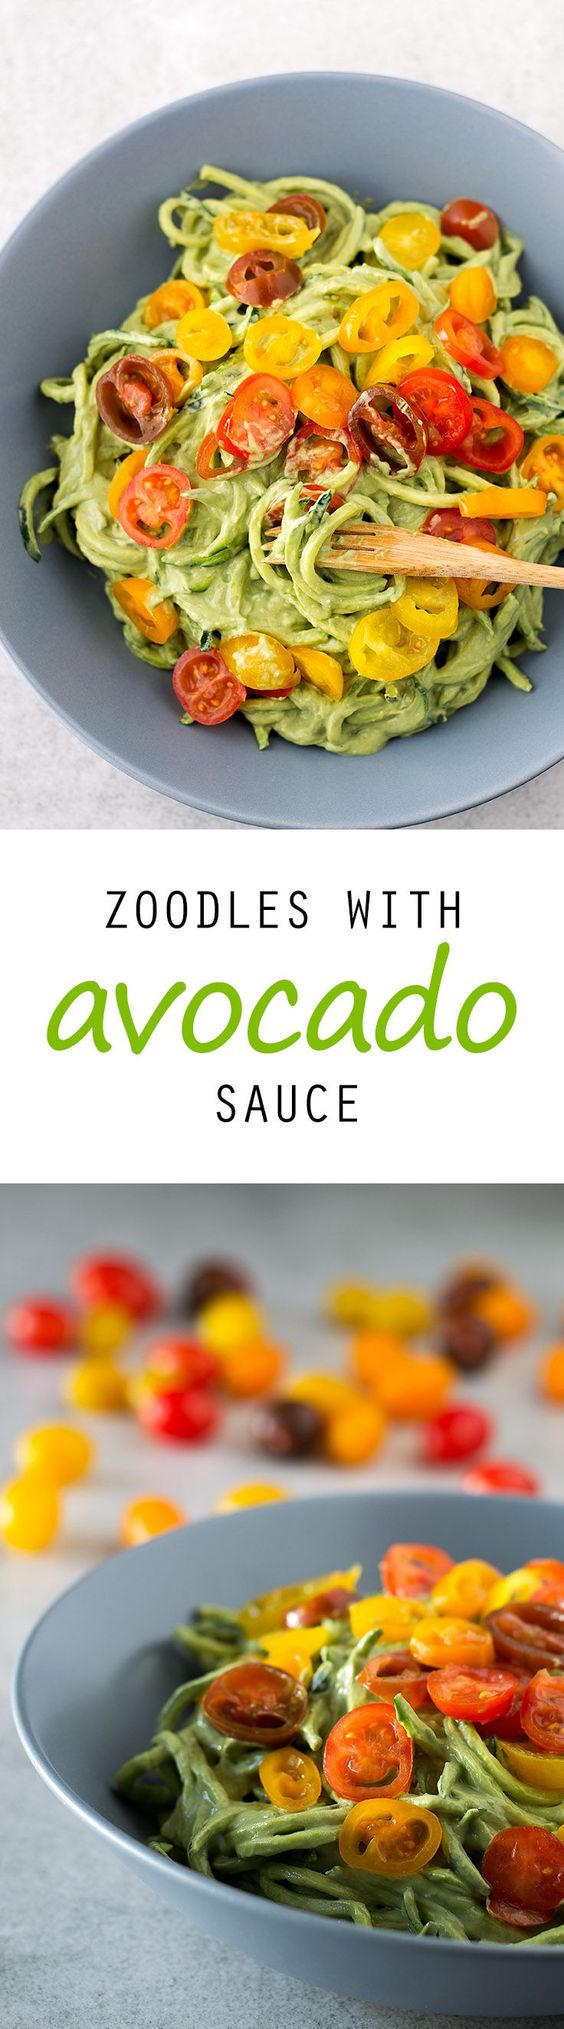 Zucchini Noodles with Avocado Sauce. Vegan, gluten free and low carb dinner recipe